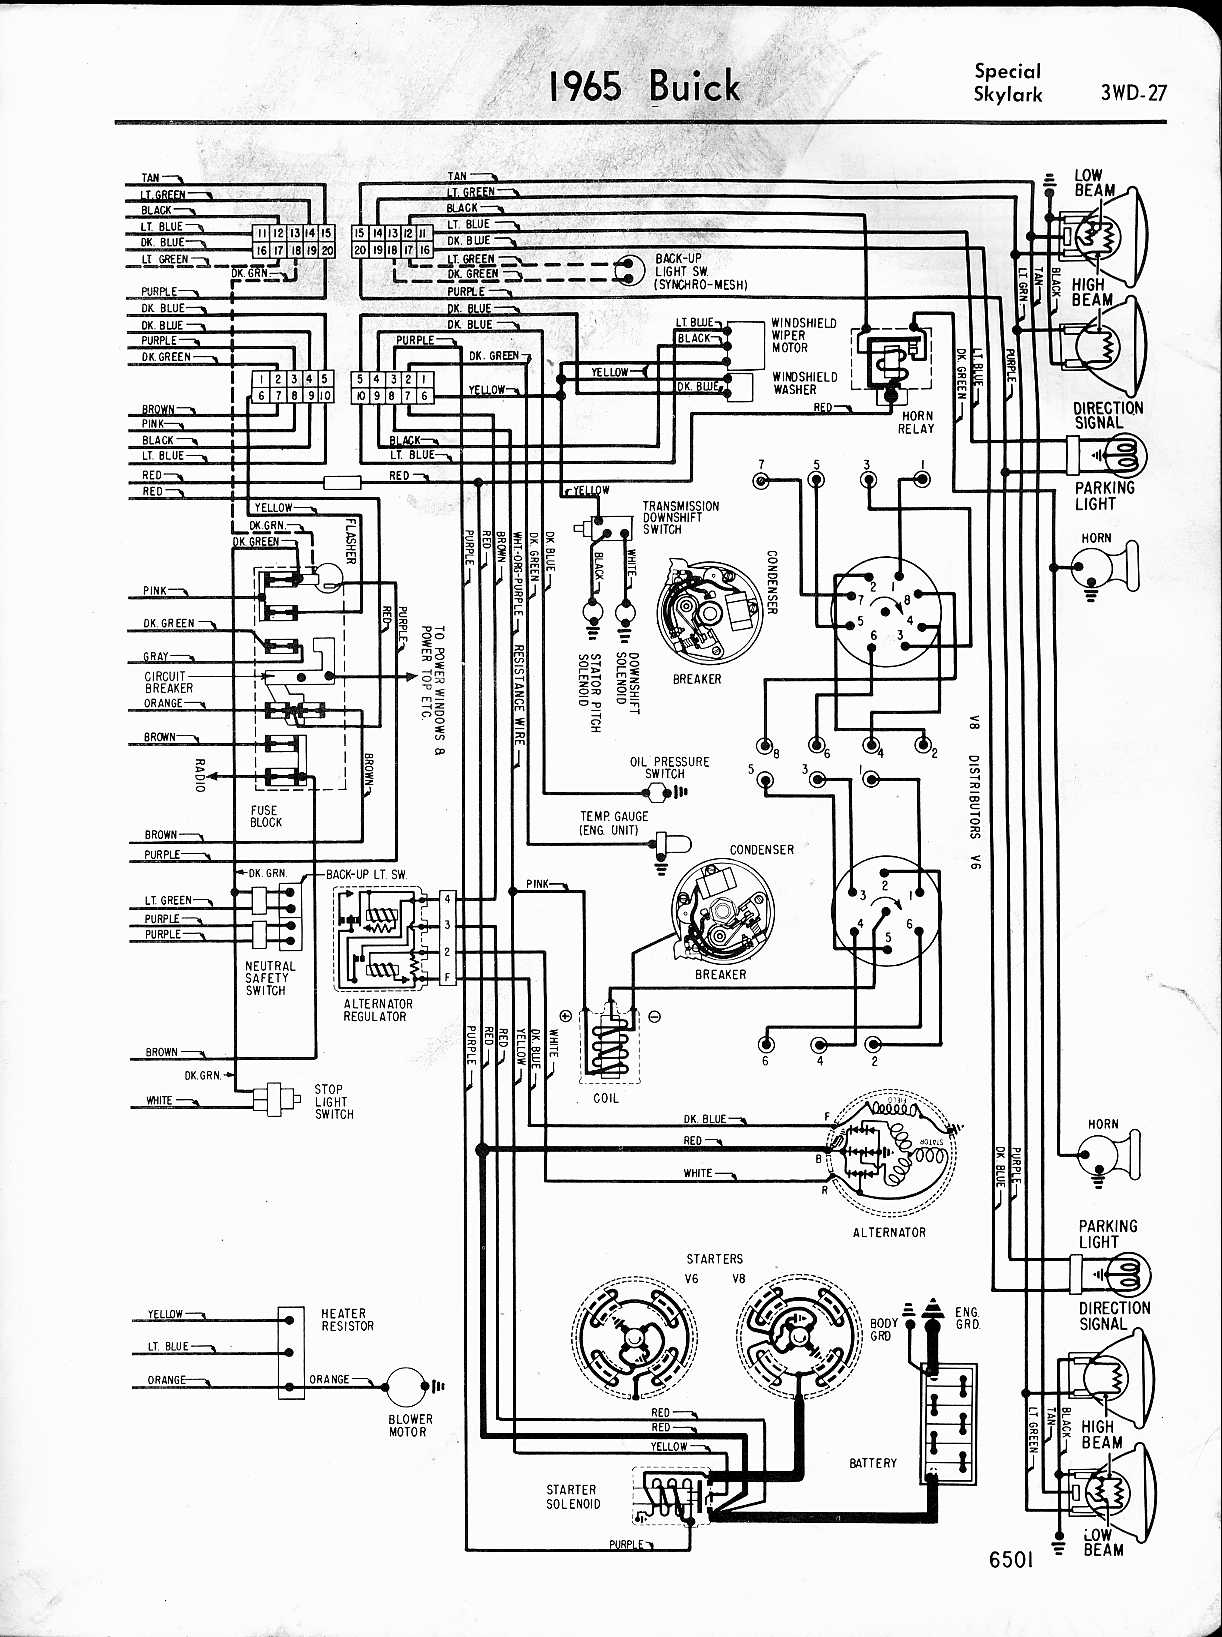 wiring harness for 1964 buick riviera wiring diagram for 1964 ford falcon 1968 buick riviera wiring diagram | wiring diagram